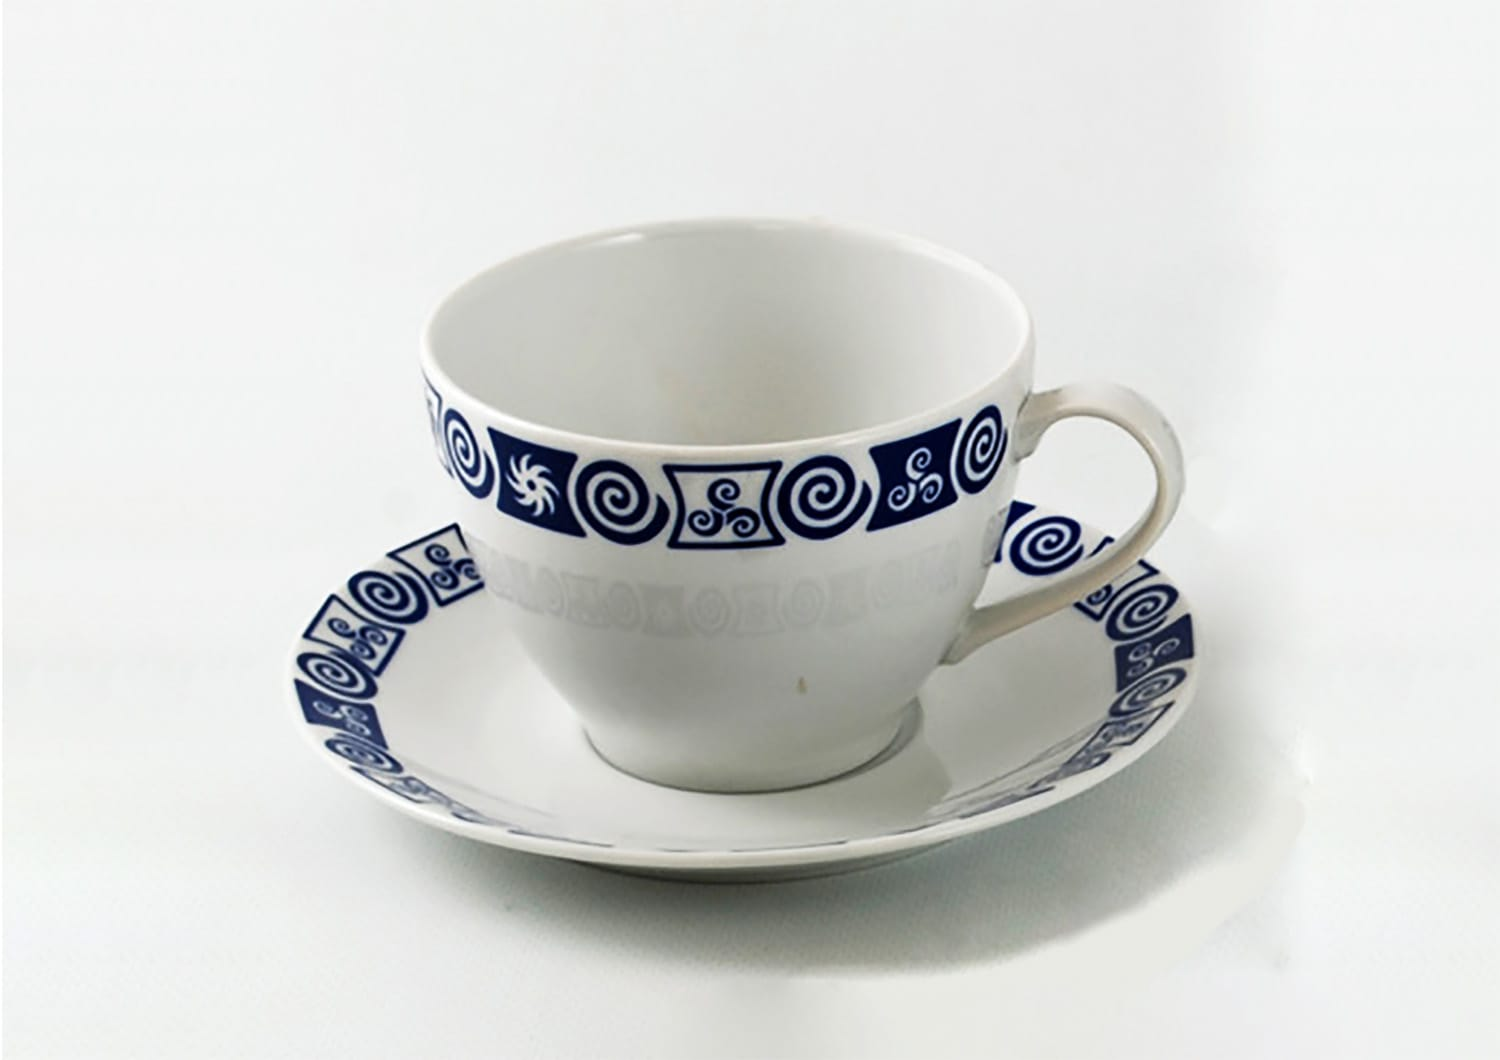 Volare design Mug and saucer. Celta collection.